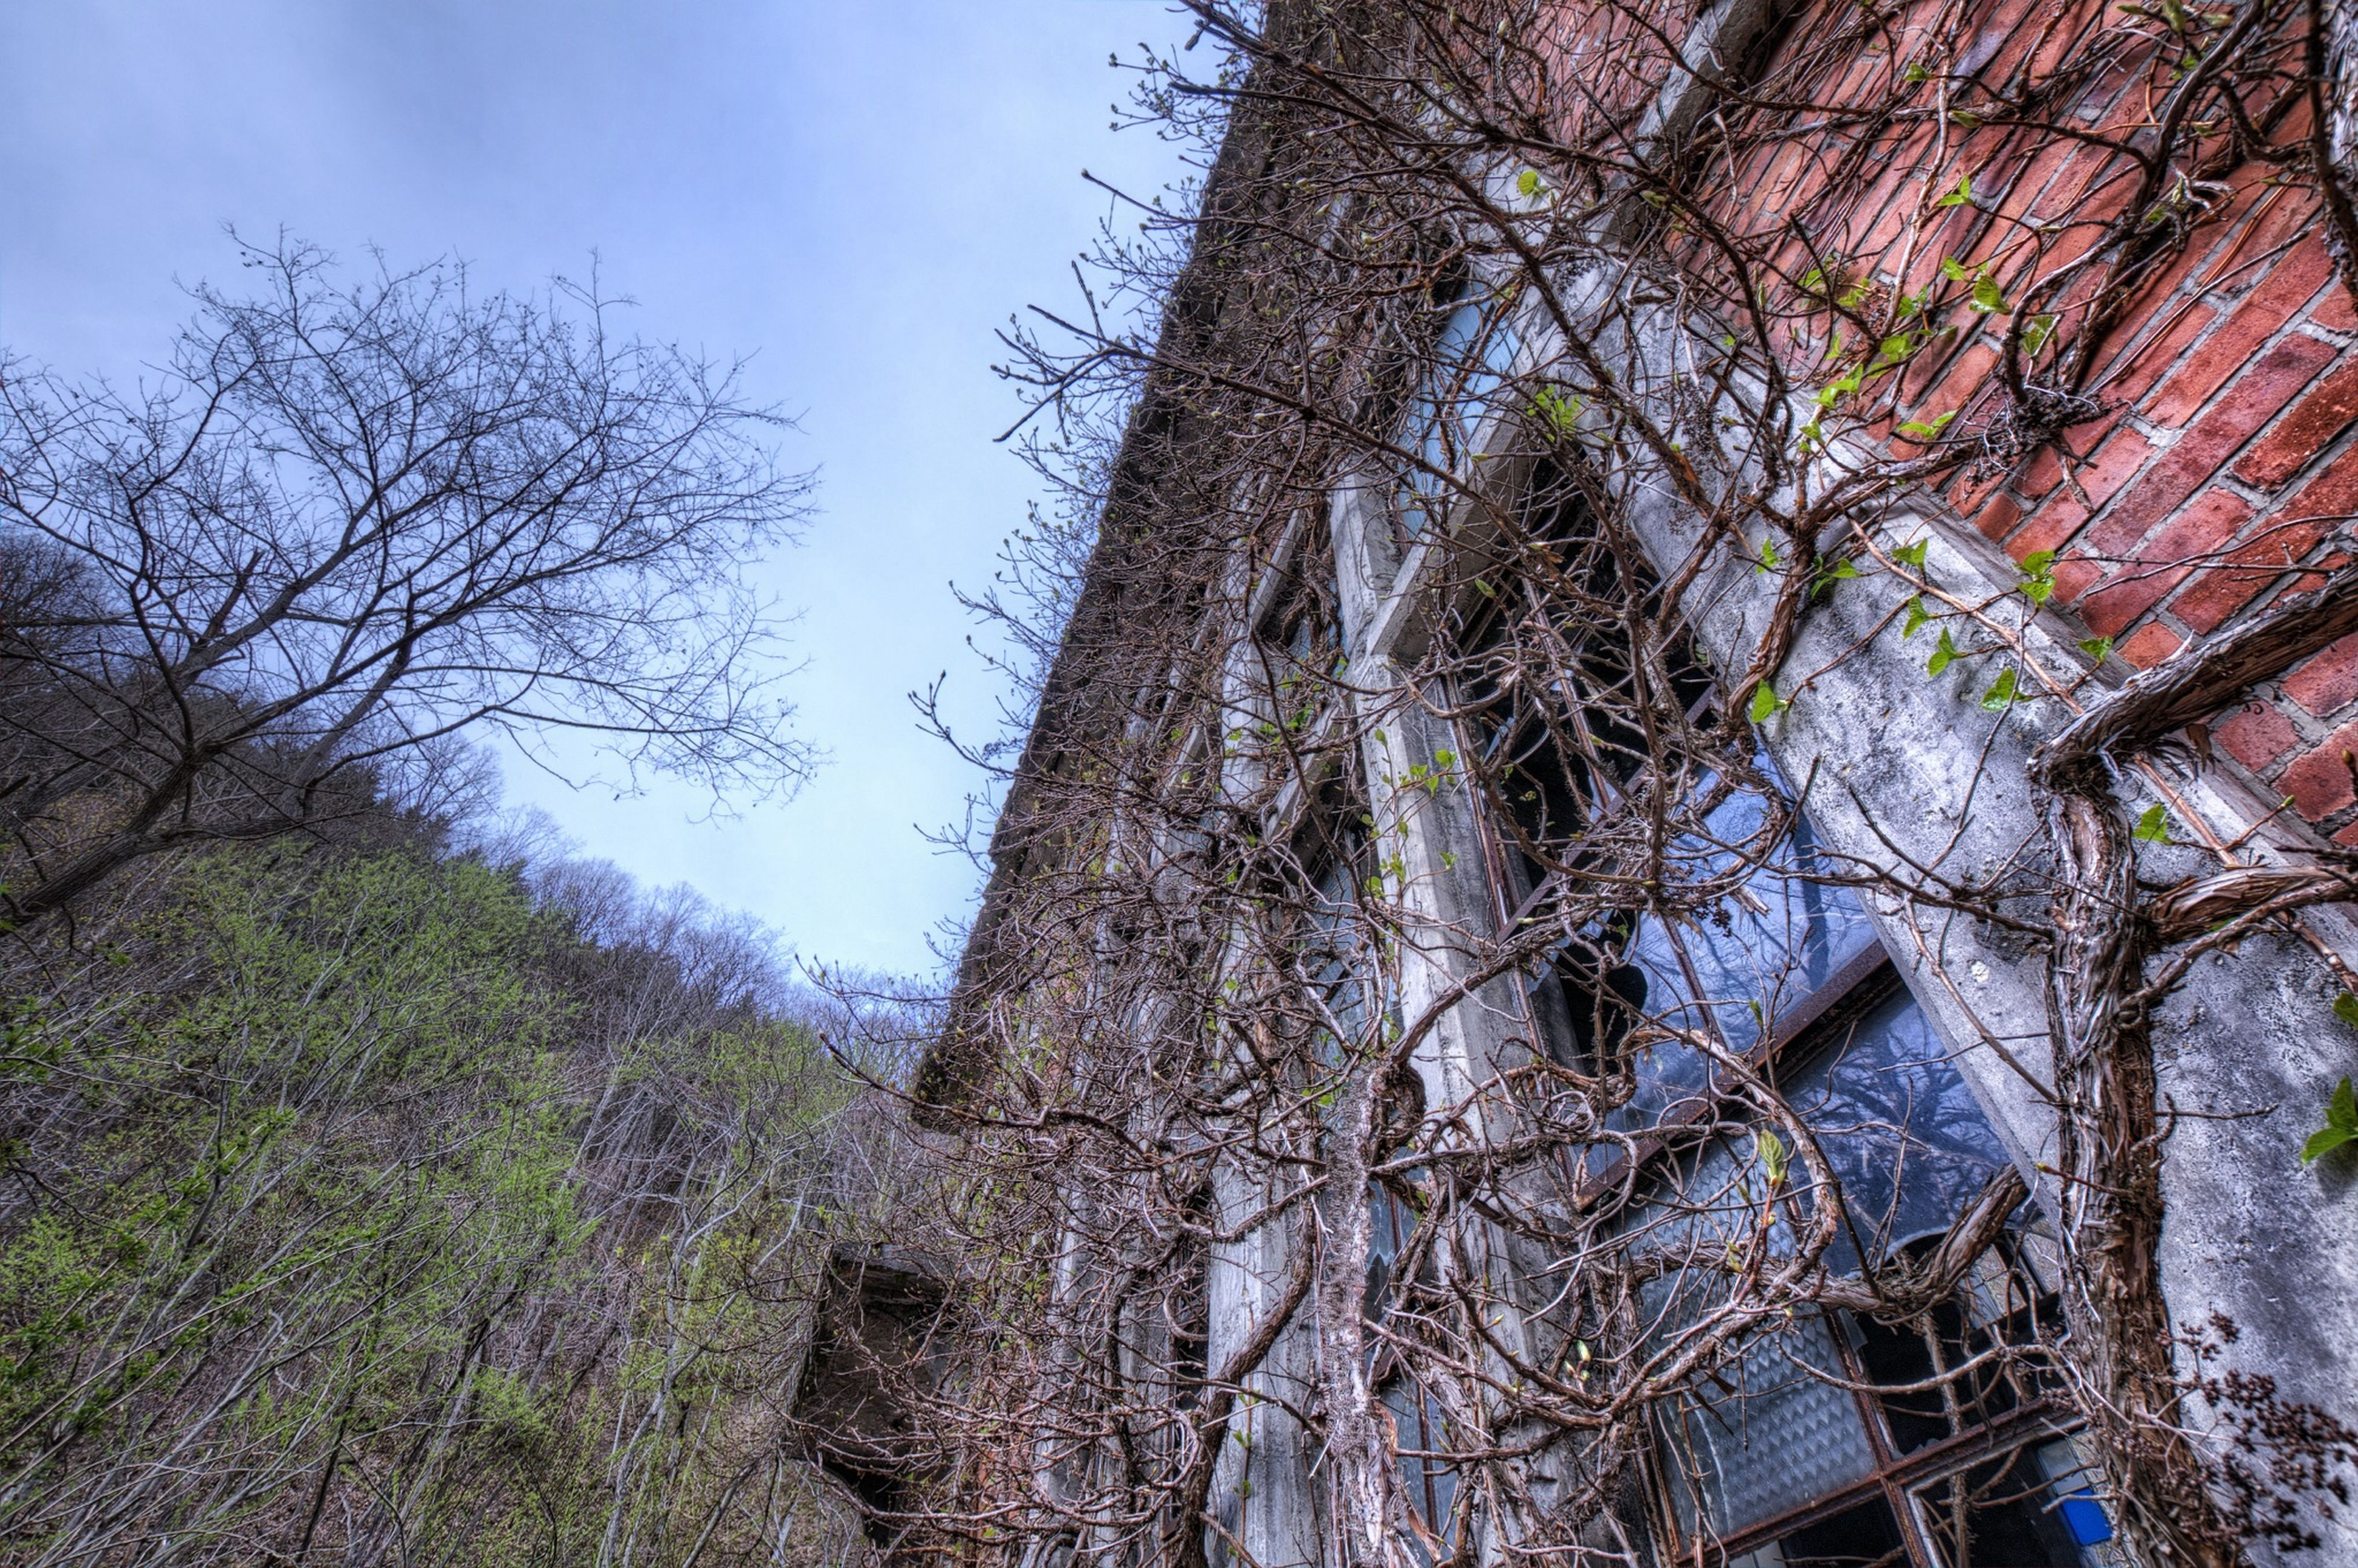 bare tree, tree, built structure, architecture, building exterior, low angle view, abandoned, branch, old, sky, house, damaged, weathered, obsolete, run-down, tree trunk, day, no people, outdoors, deterioration